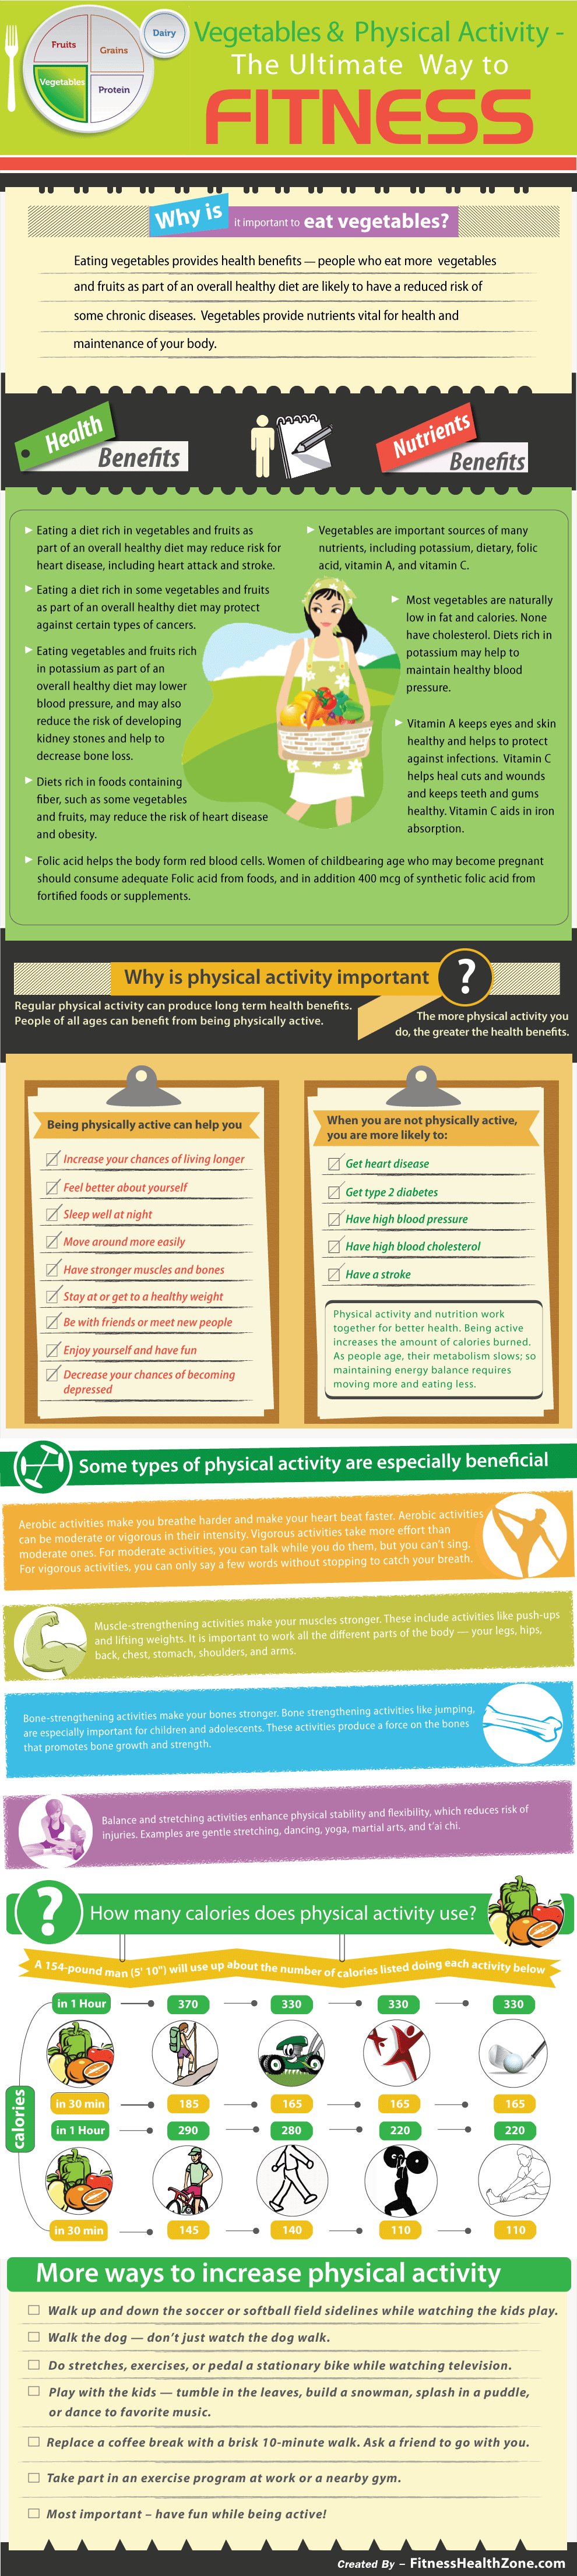 Fitness Through Vegetables and Physical Activity